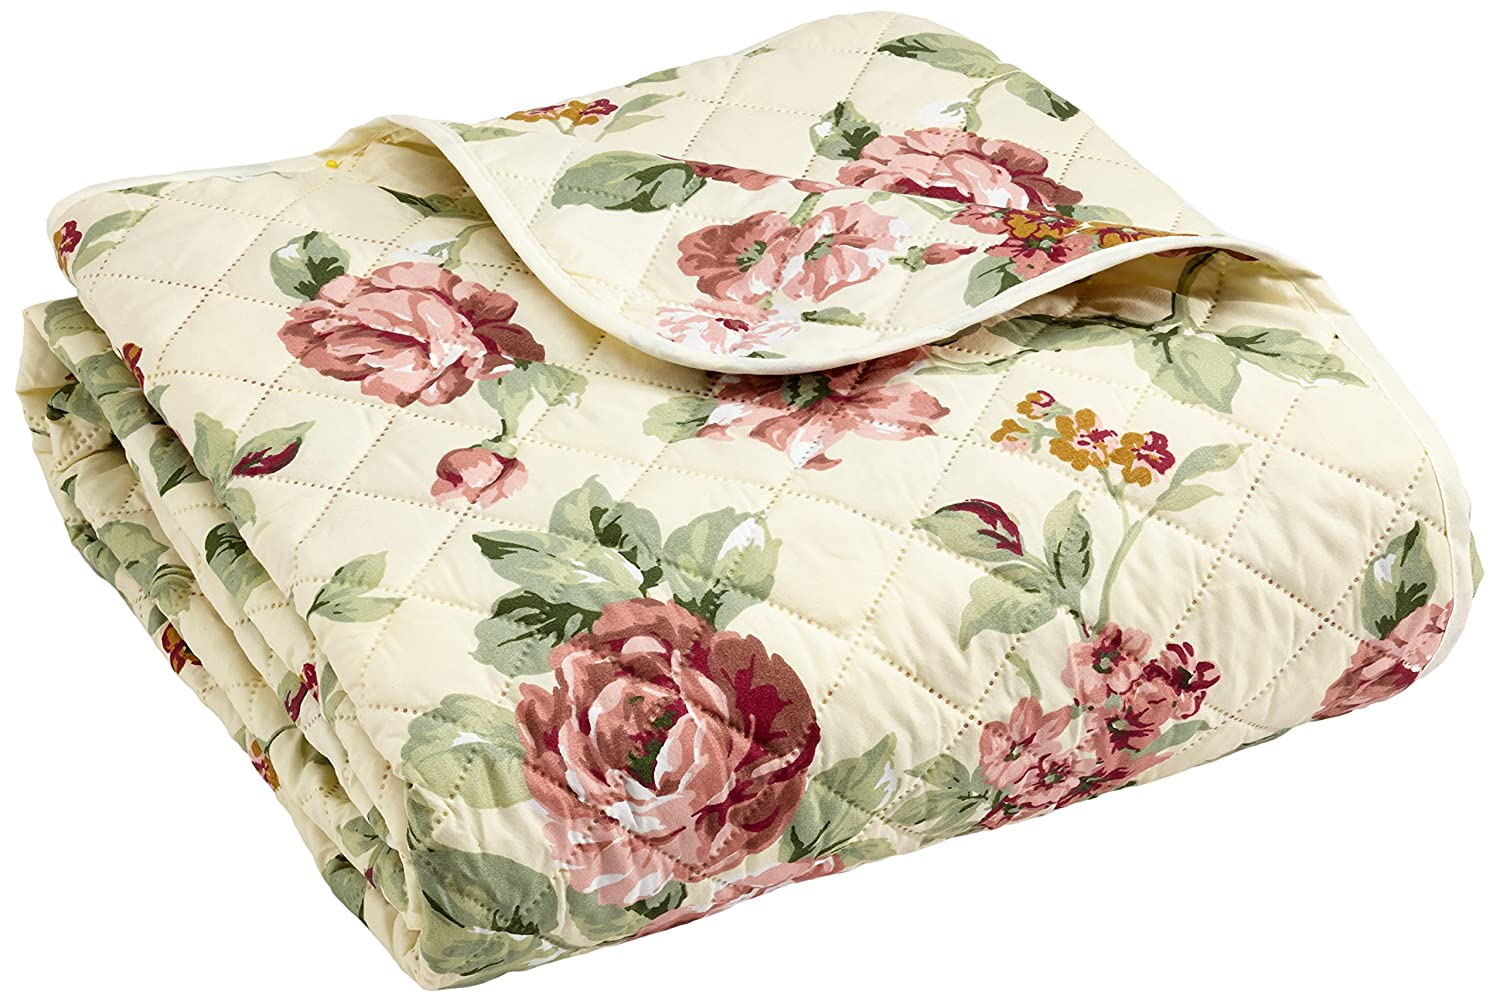 Eurofirany Patchwork Bedspread Ania Reversible Modern Quilt Easy Care Throw with Floral Print, Creamy, 220 x 240 cm Import CHON/P/ANIA/MIX/220